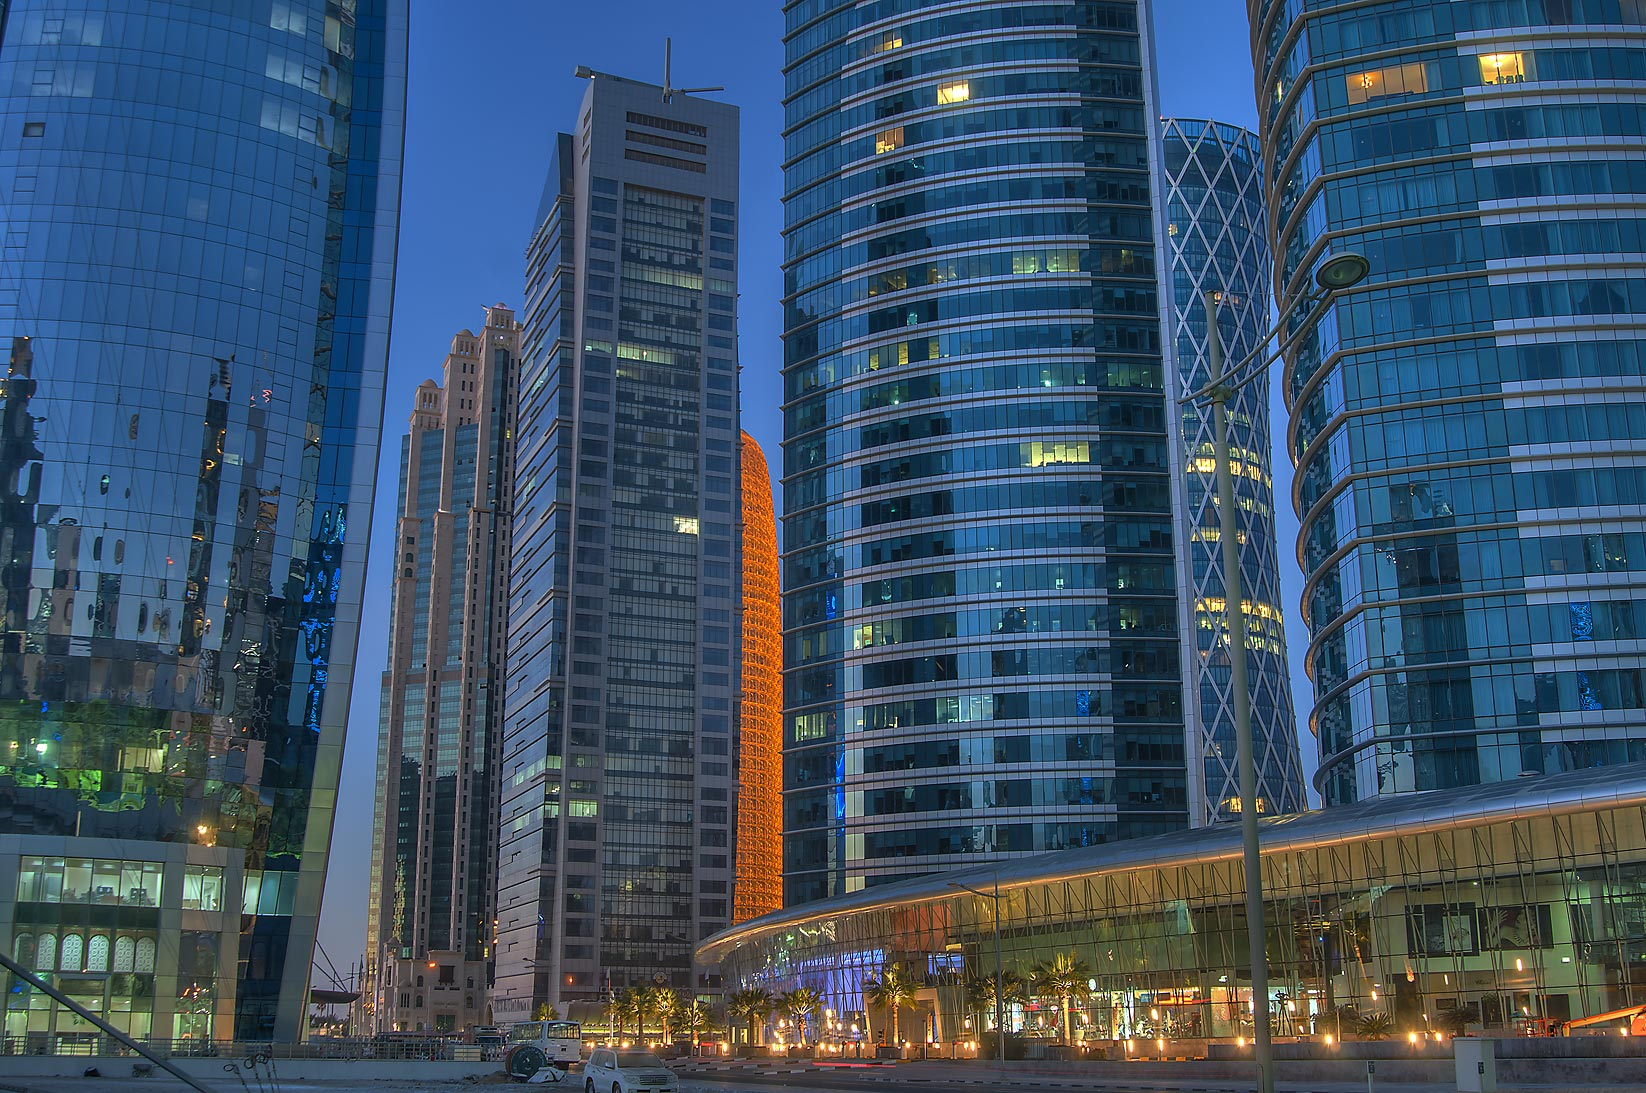 Area of Al Fardan Towers in West Bay. Doha, Qatar